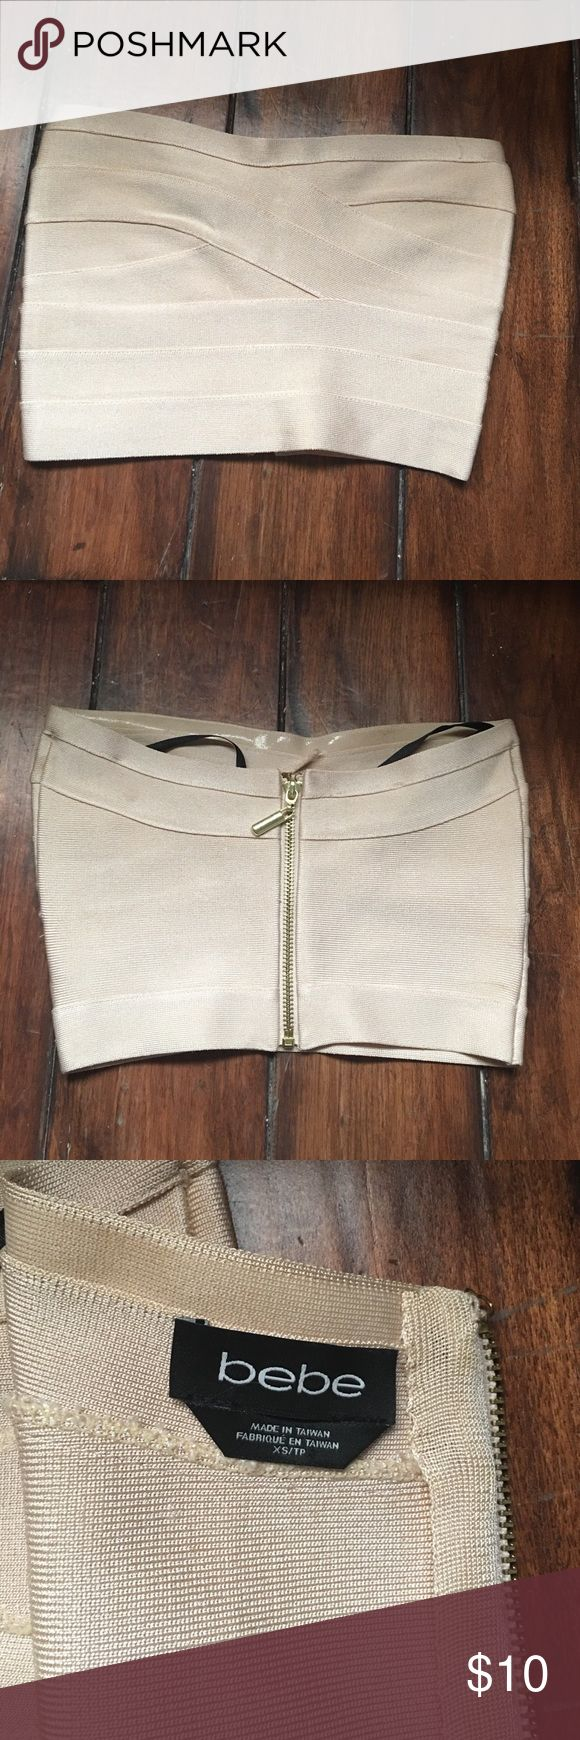 Bebe Bandeau top size XS Bebe bandeau top cream colored size XS. Worn twice bebe Tops Crop Tops